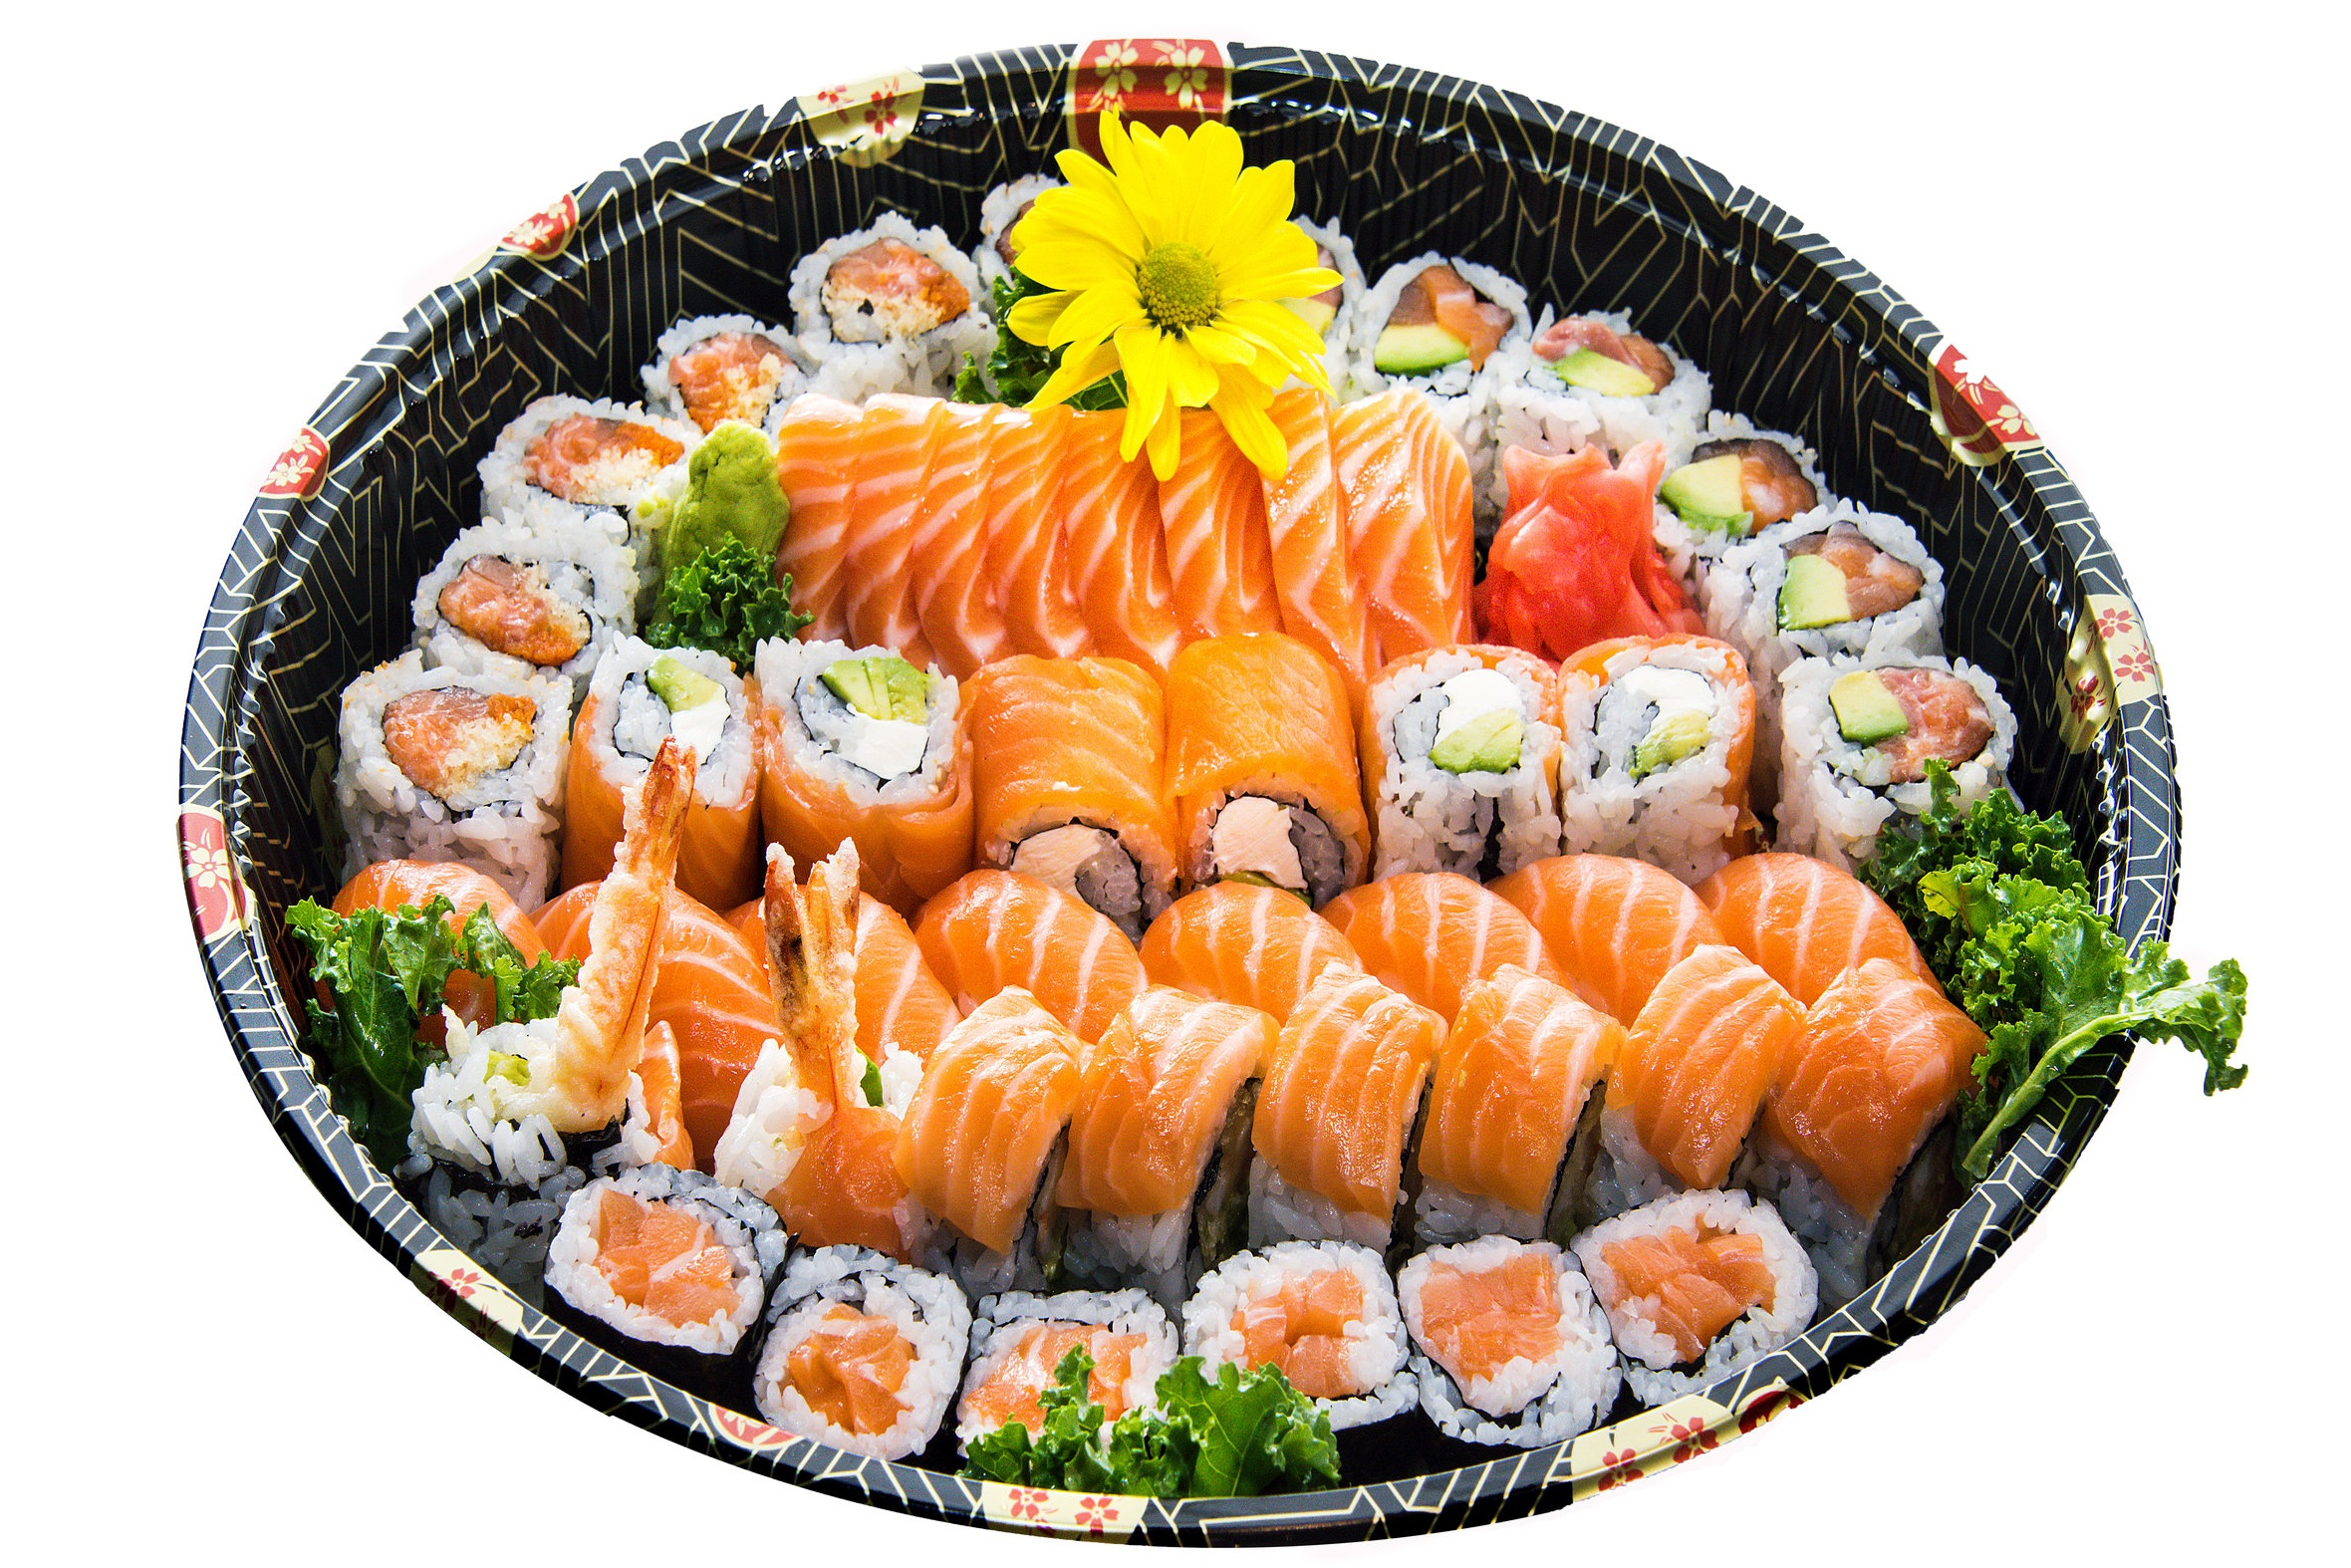 Party Tray A6    Sushi (8) Sashimi (8) Red Dragon (8) Salmon Roll (6) Spicy Salmon (6) Salmon Avocado Roll (6) Cream Cheese Salmon Roll (6)